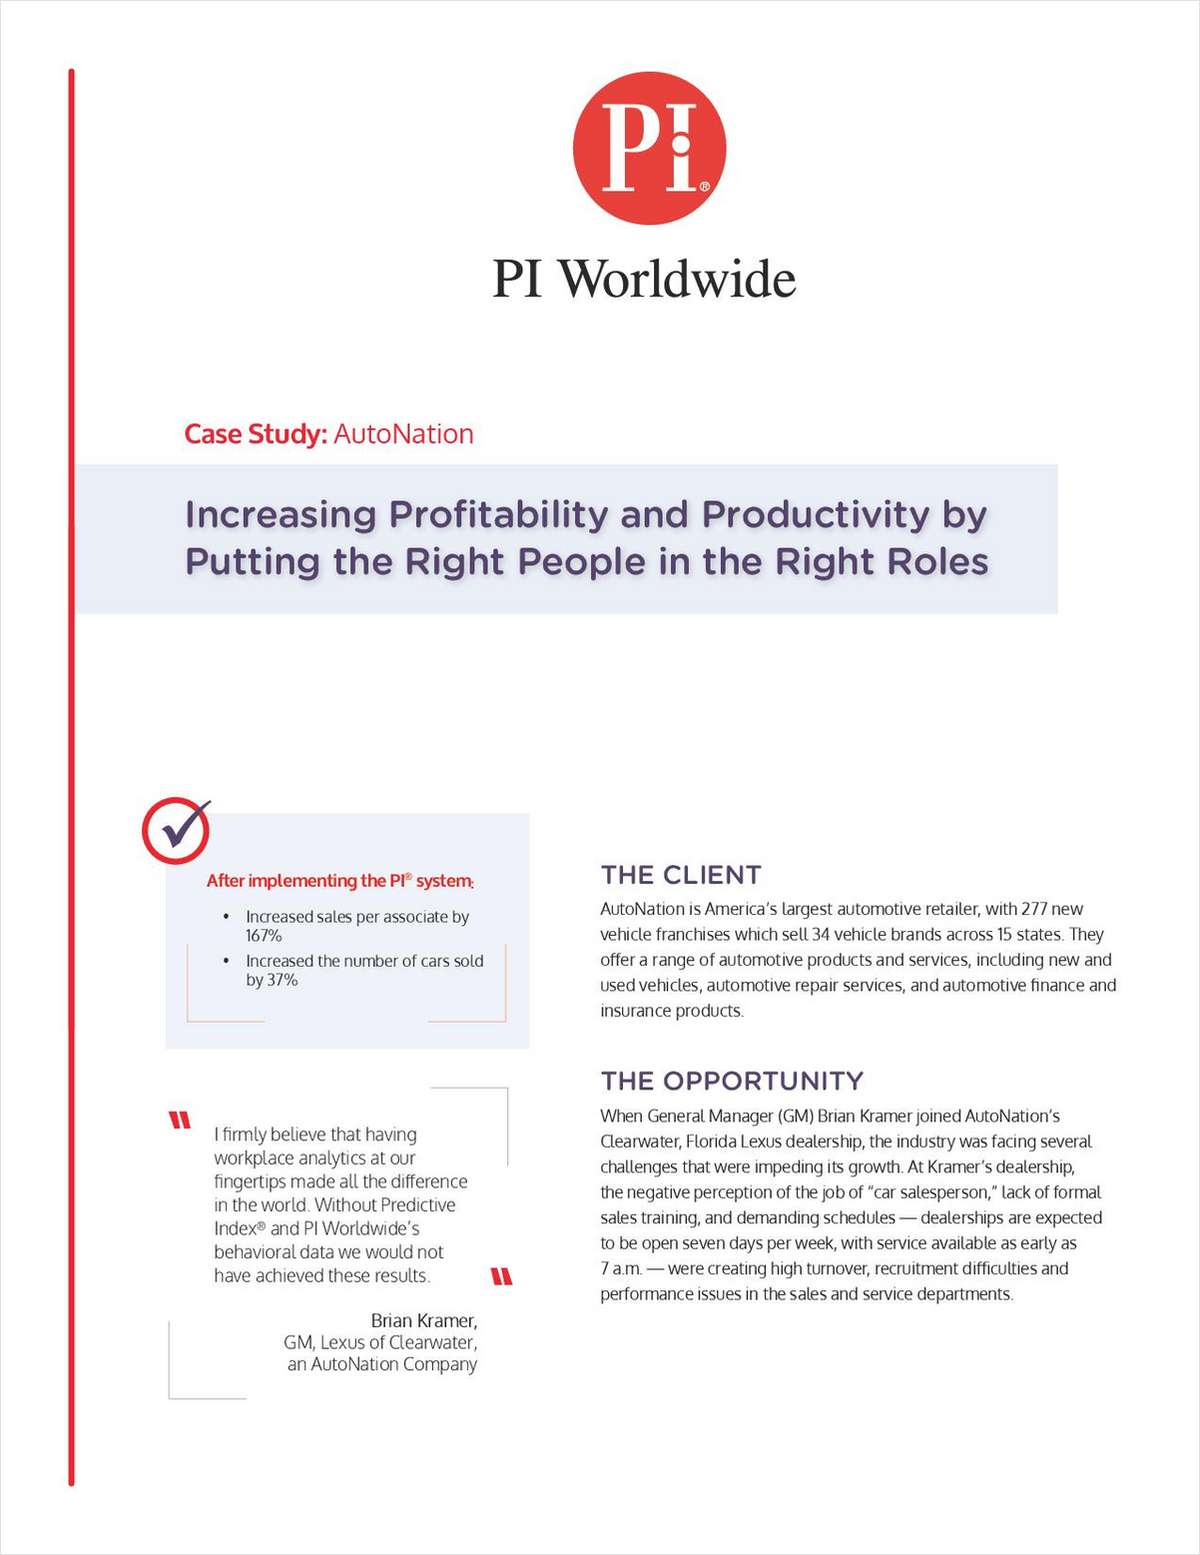 How to Increase Profits by Placing the Right People in the Right Roles